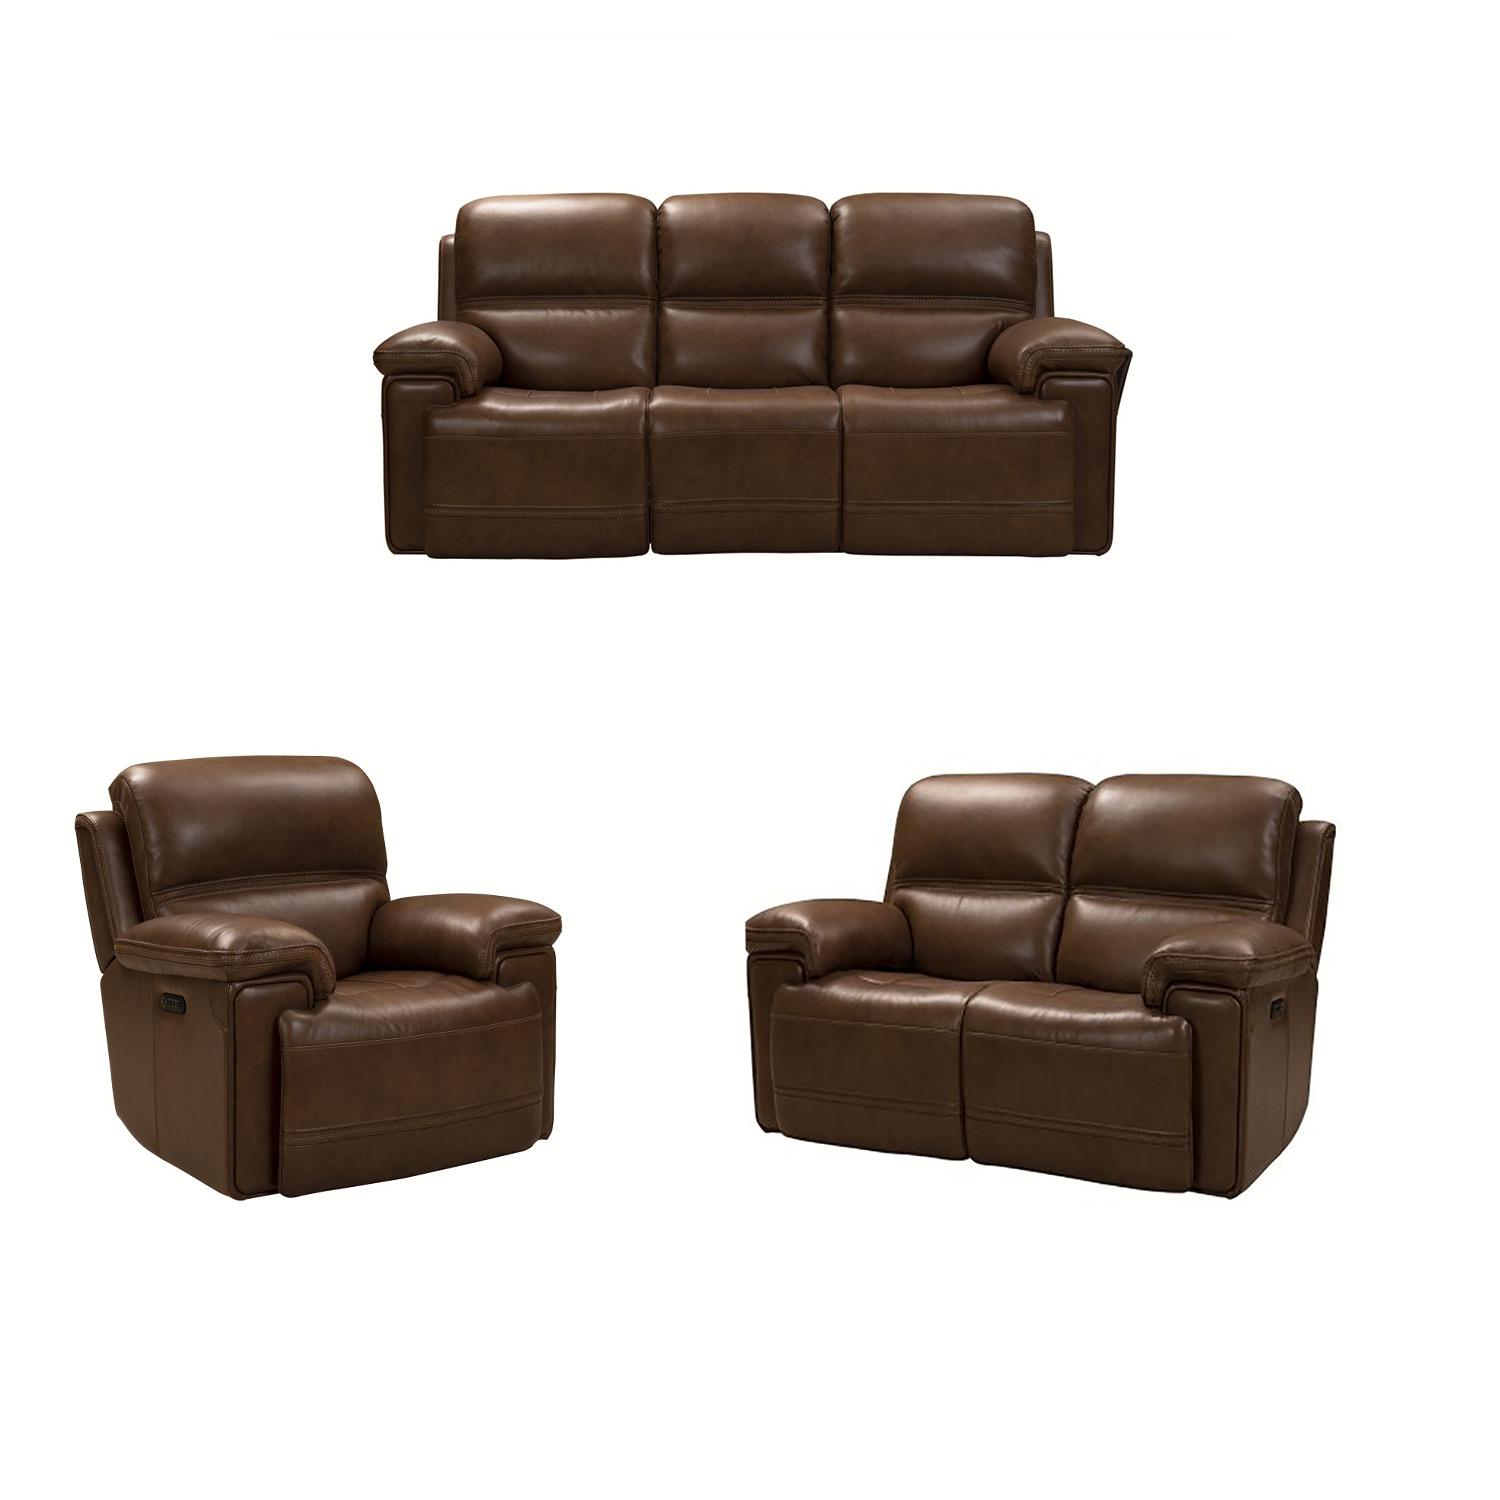 Barcalounger Sedrick Power Reclining Sofa Set with Power Head Rests - Spence Caramel/Leather Match